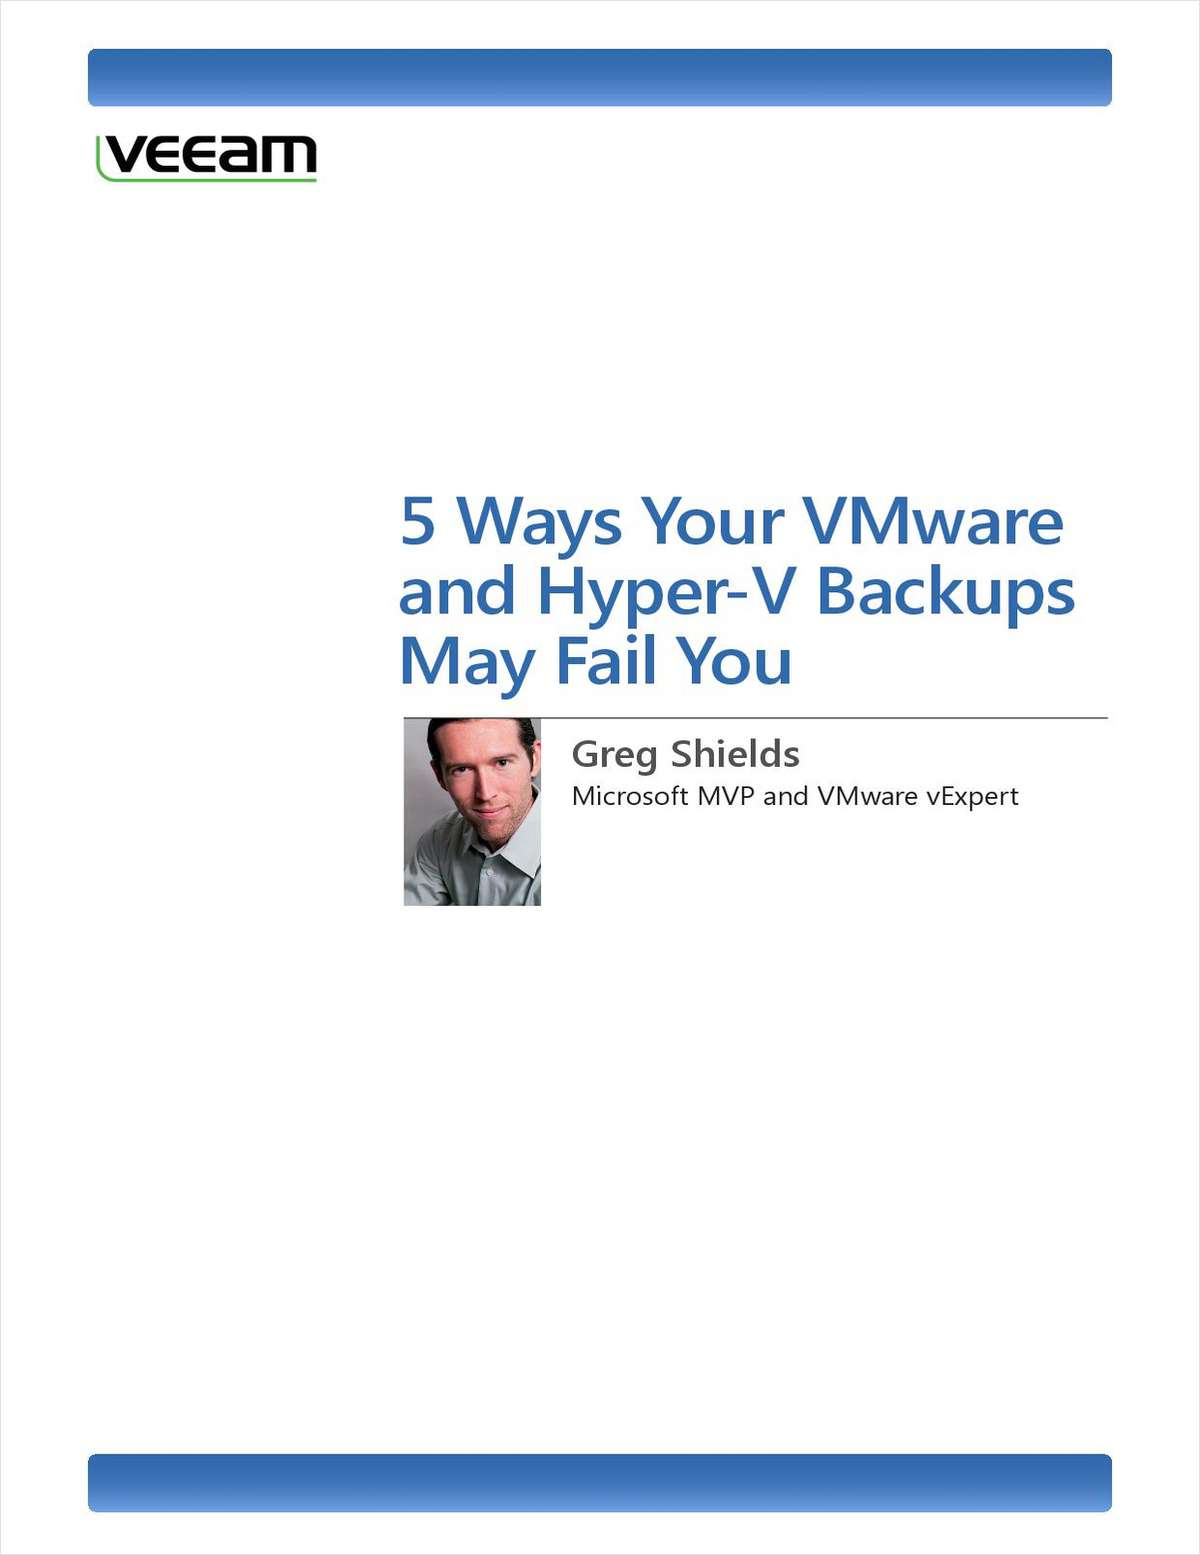 5 Ways Your VMware and Hyper-V Backups May Fail You